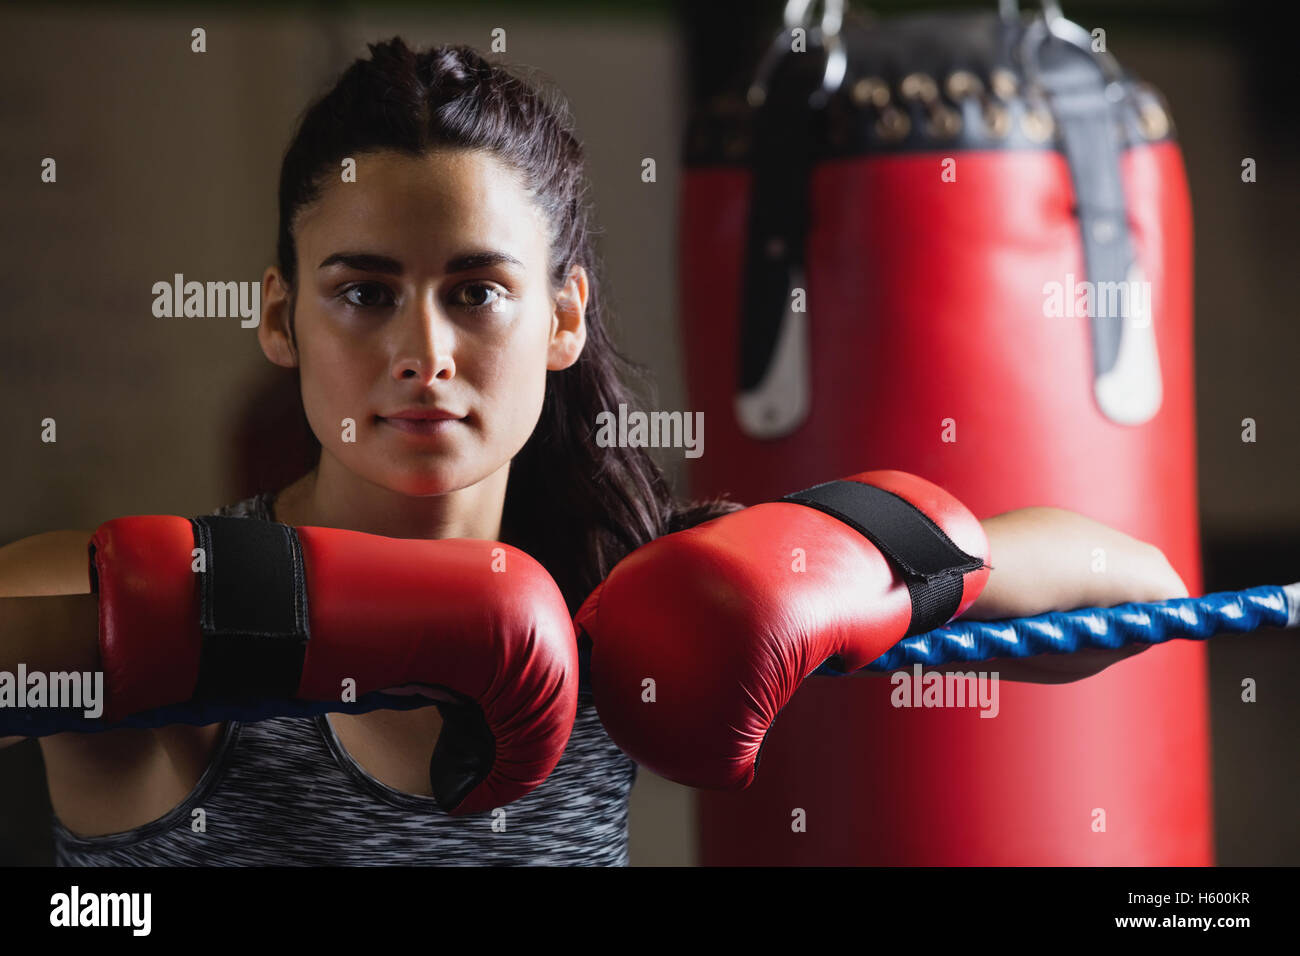 Portrait of female boxer in boxing gloves - Stock Image